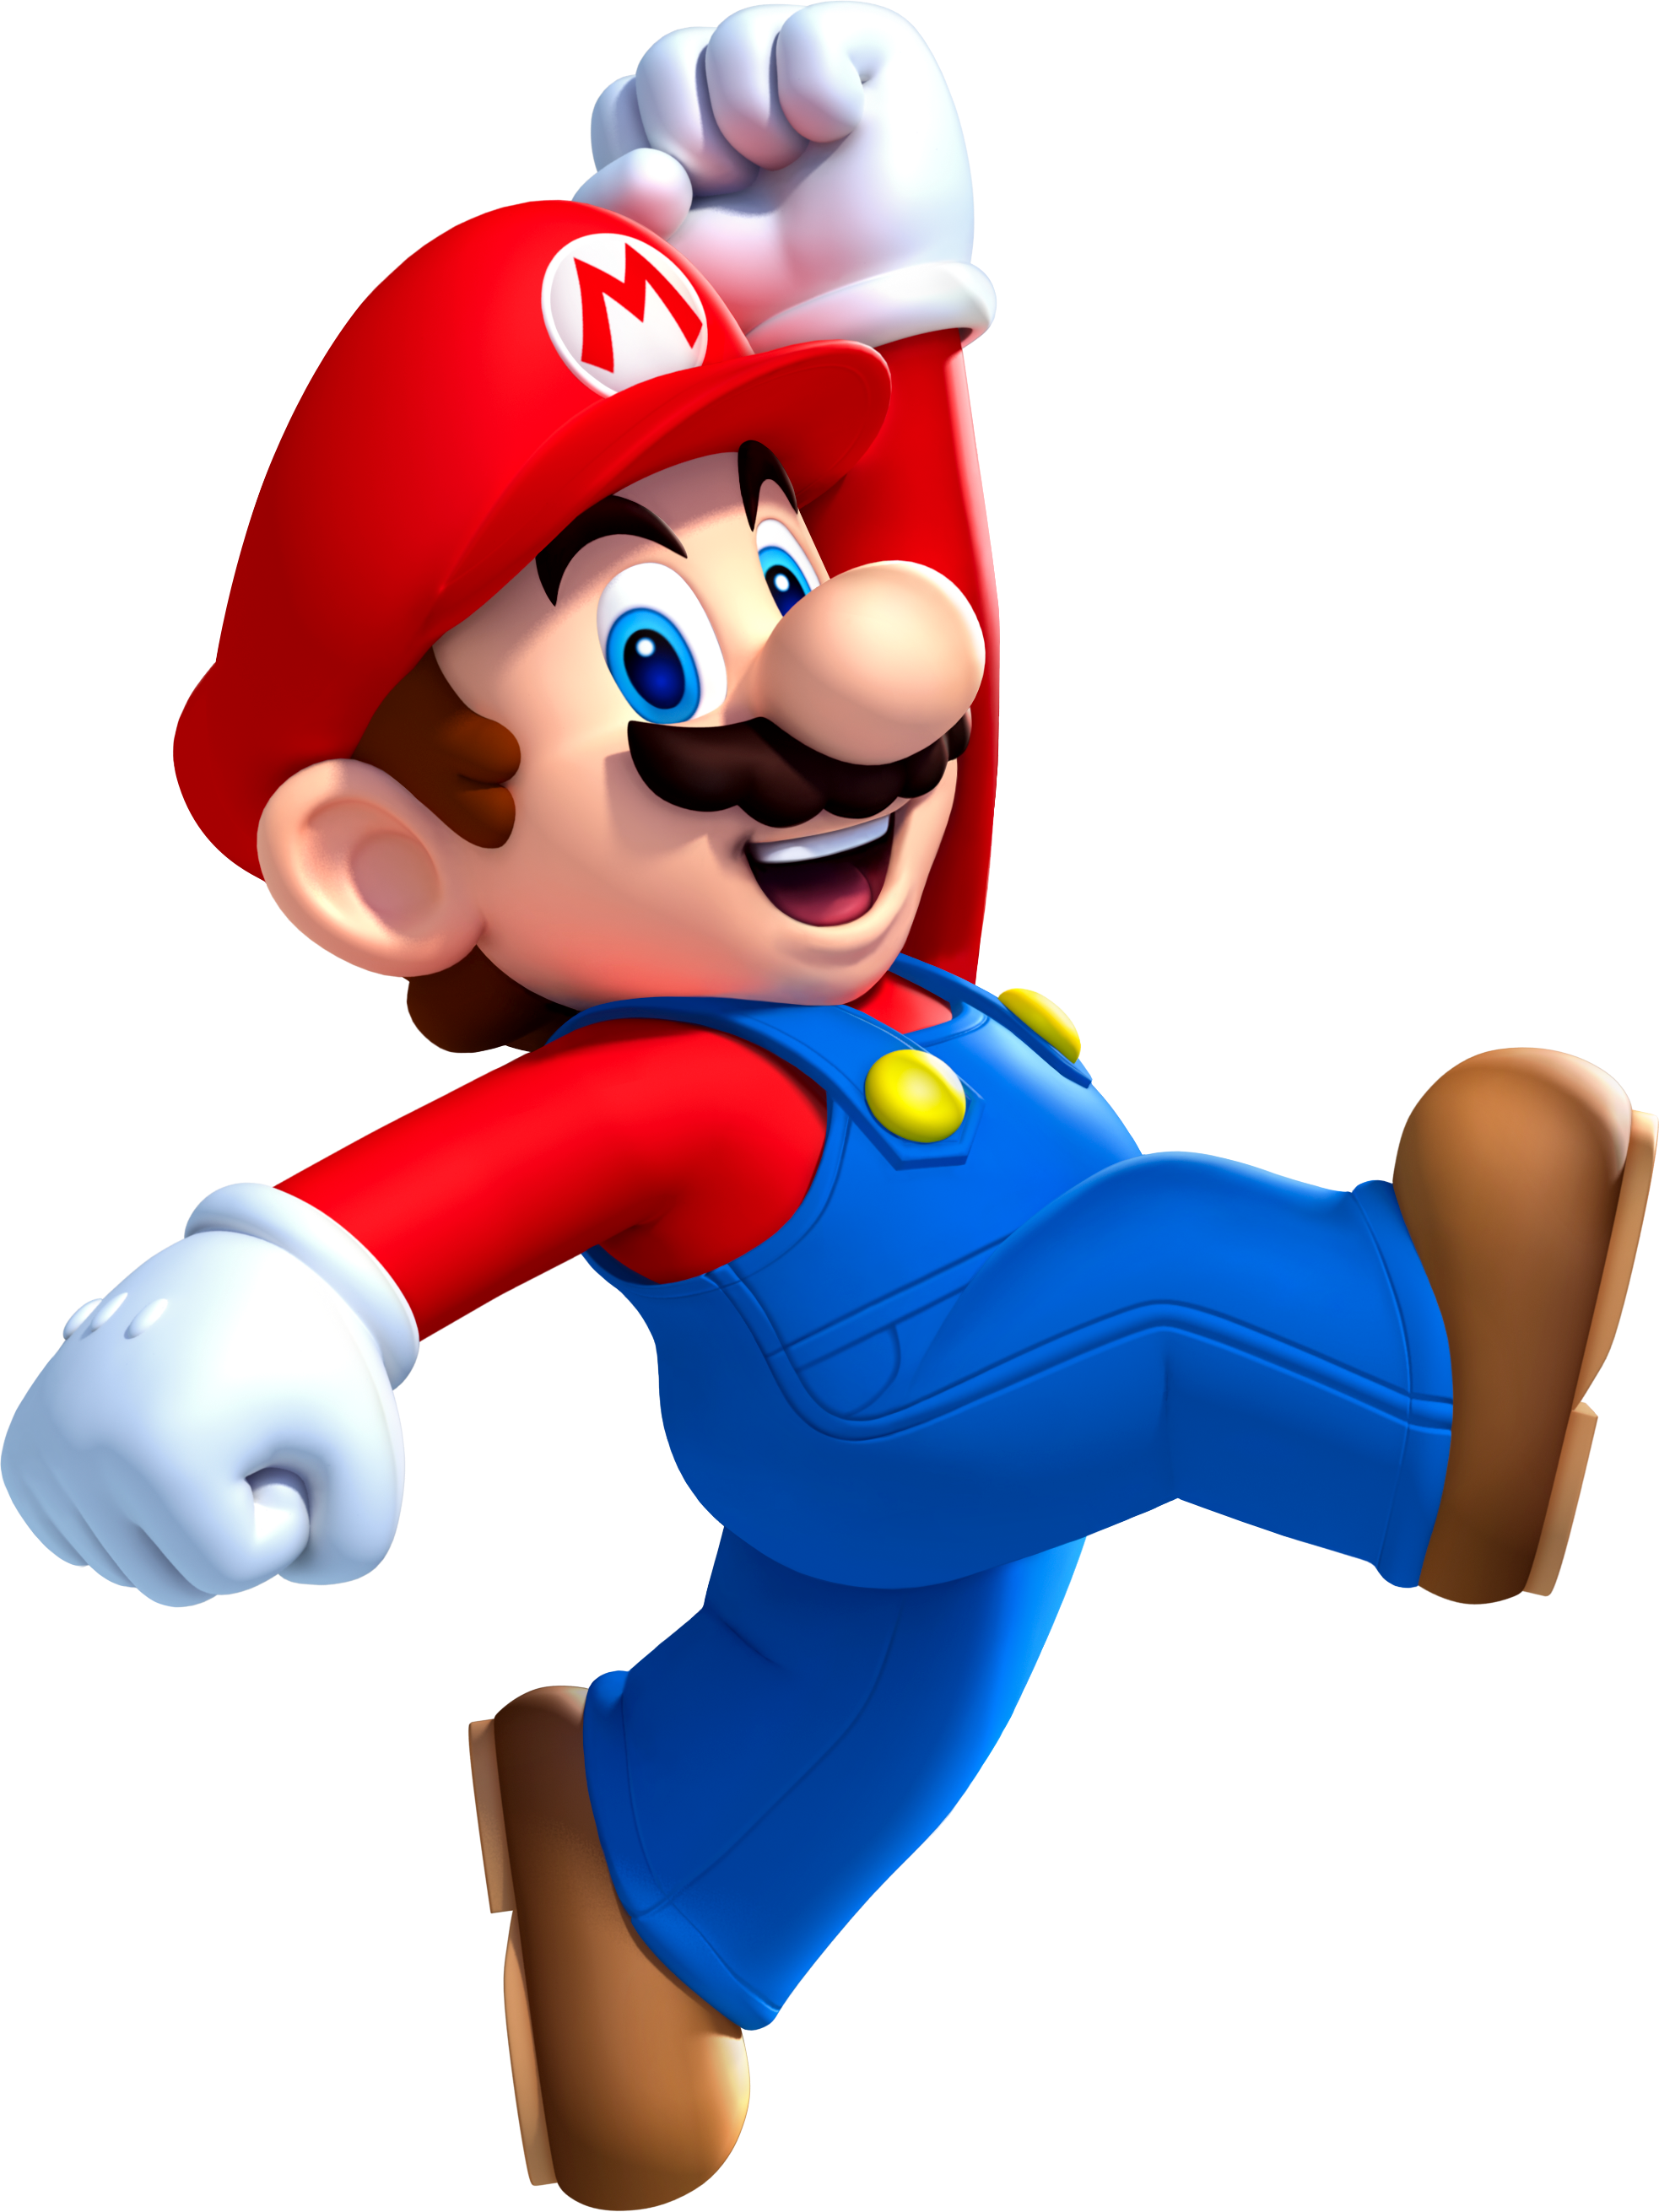 Mario | Smashpedia | Fandom powered by Wikia